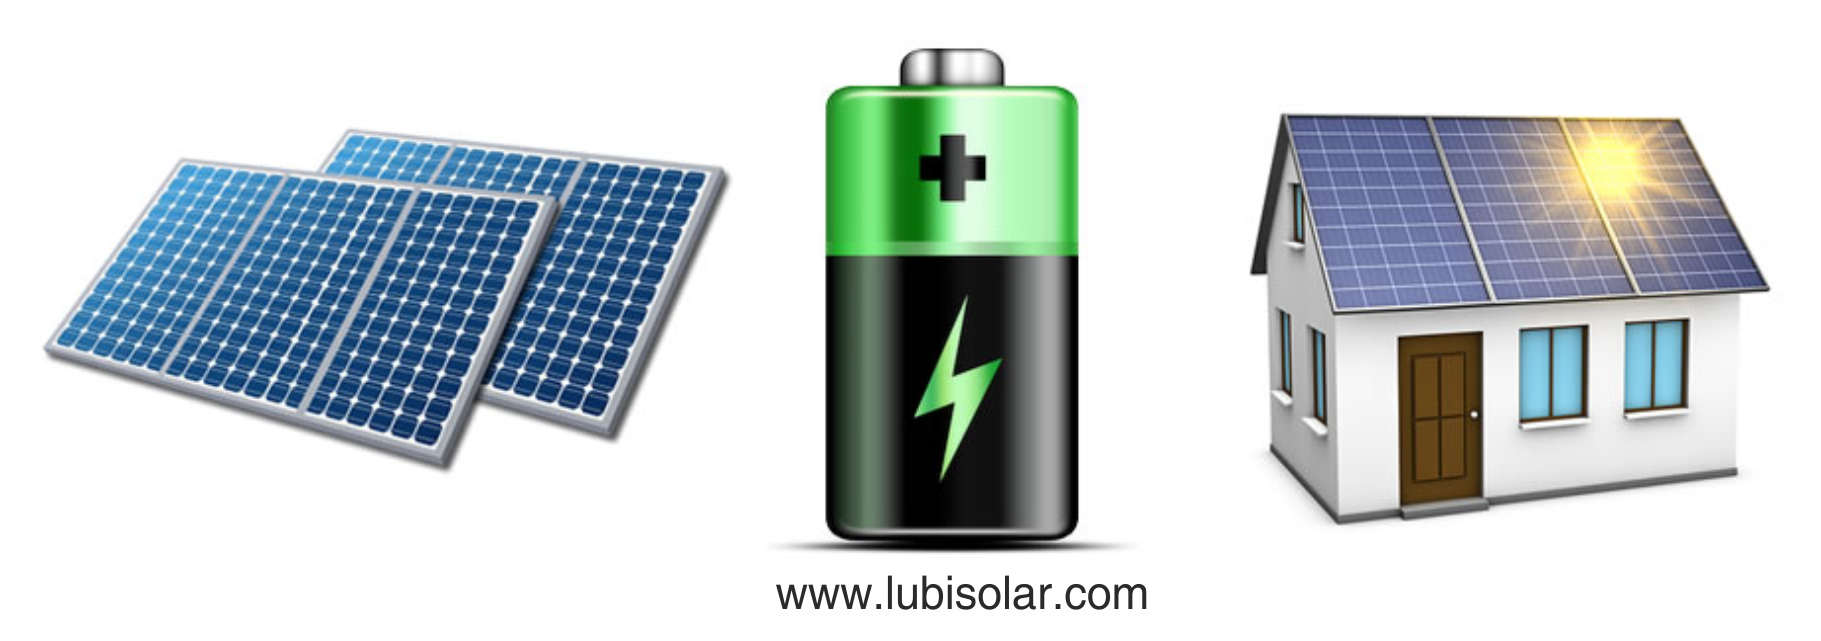 Power storage can generally take the form of electric